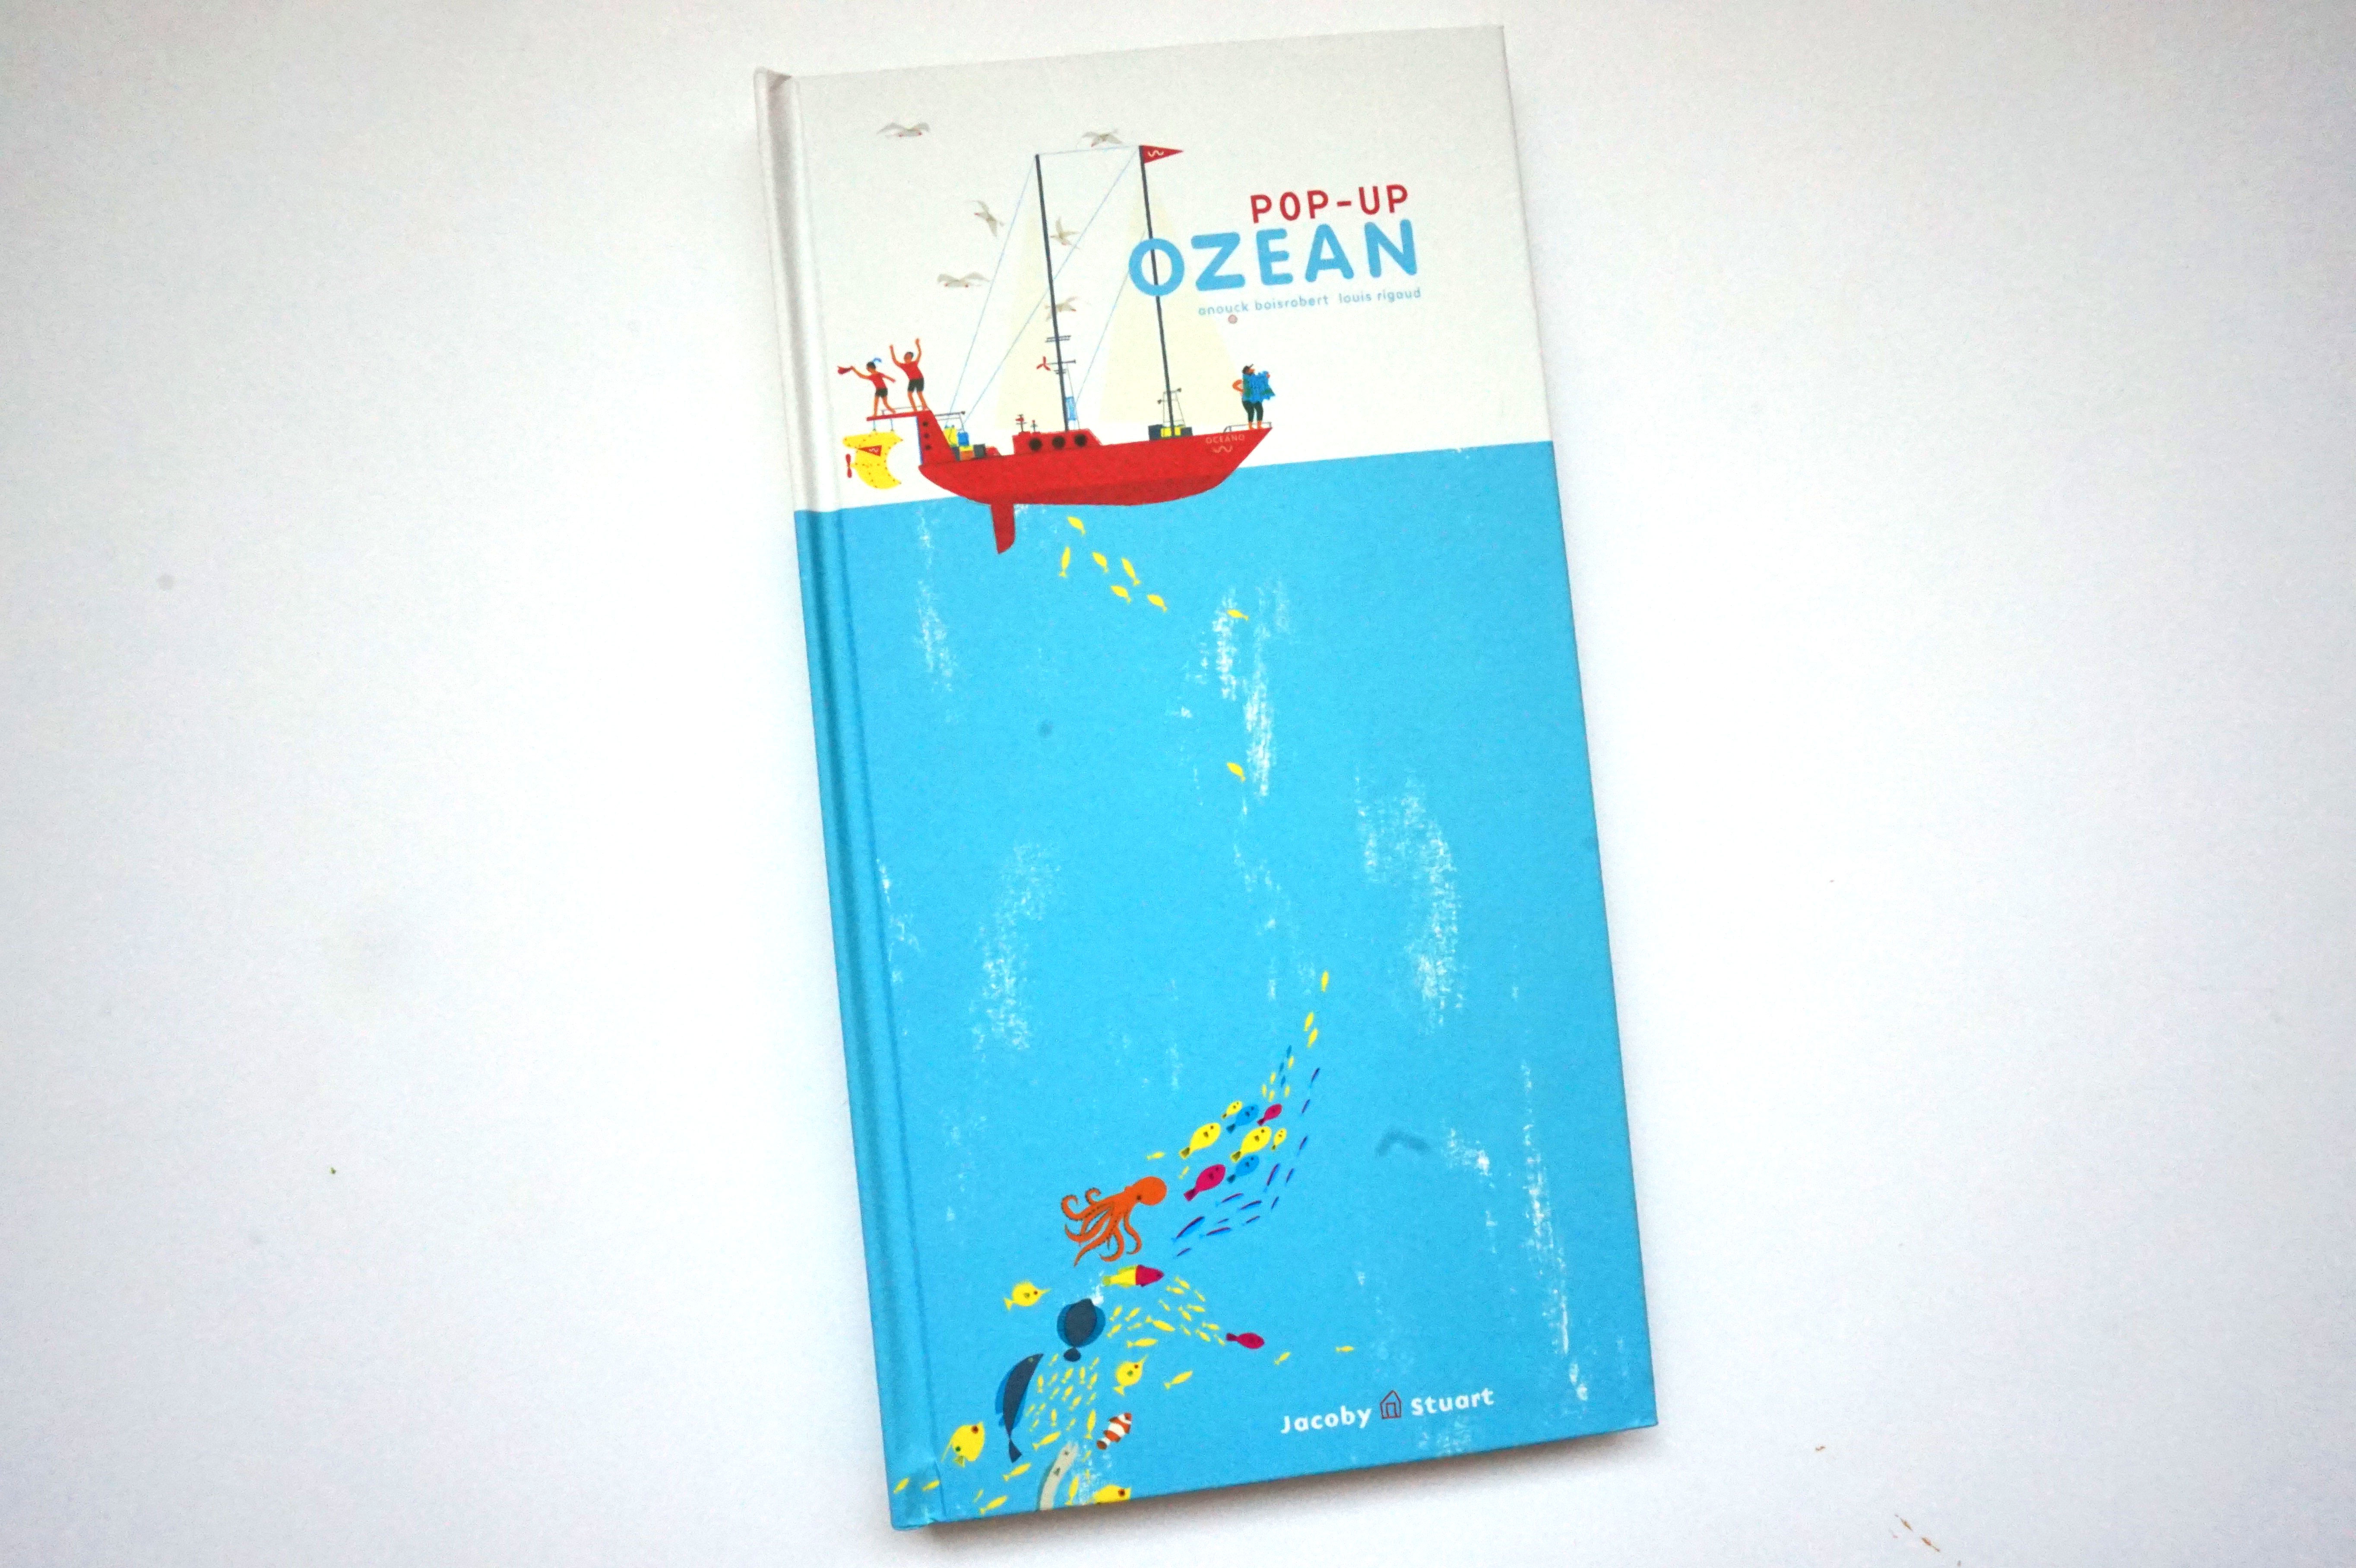 Pop-up Ozean Book Cover